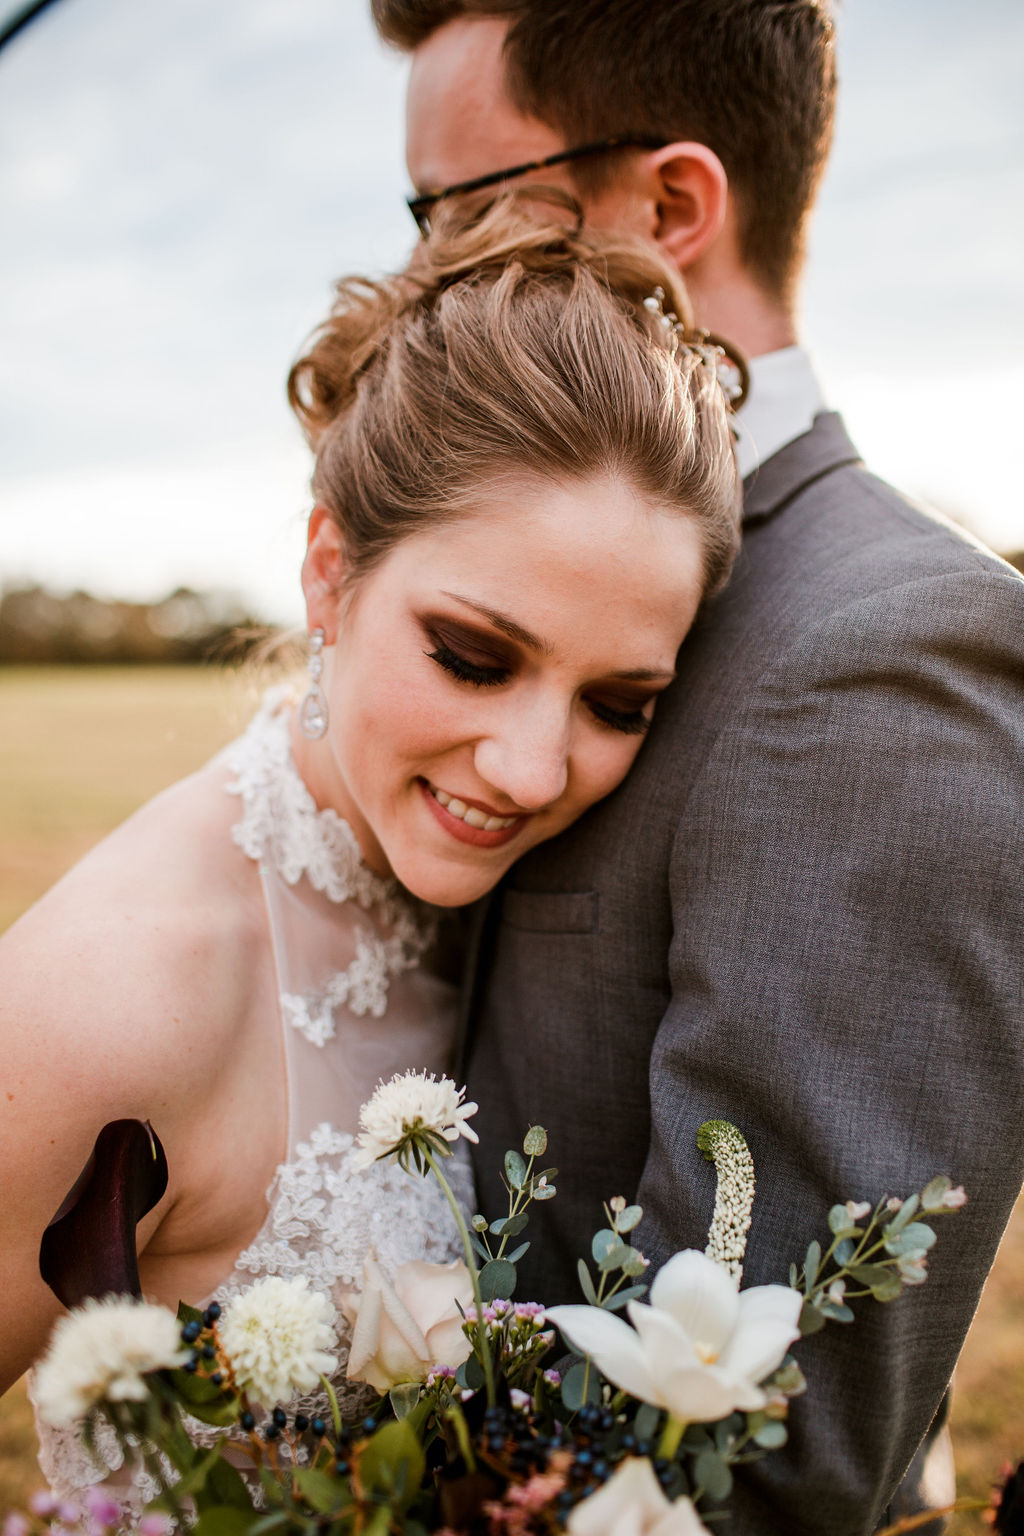 Spring Wedding Inspiration captured by John Myers Photography featured on Nashville Bride Guide